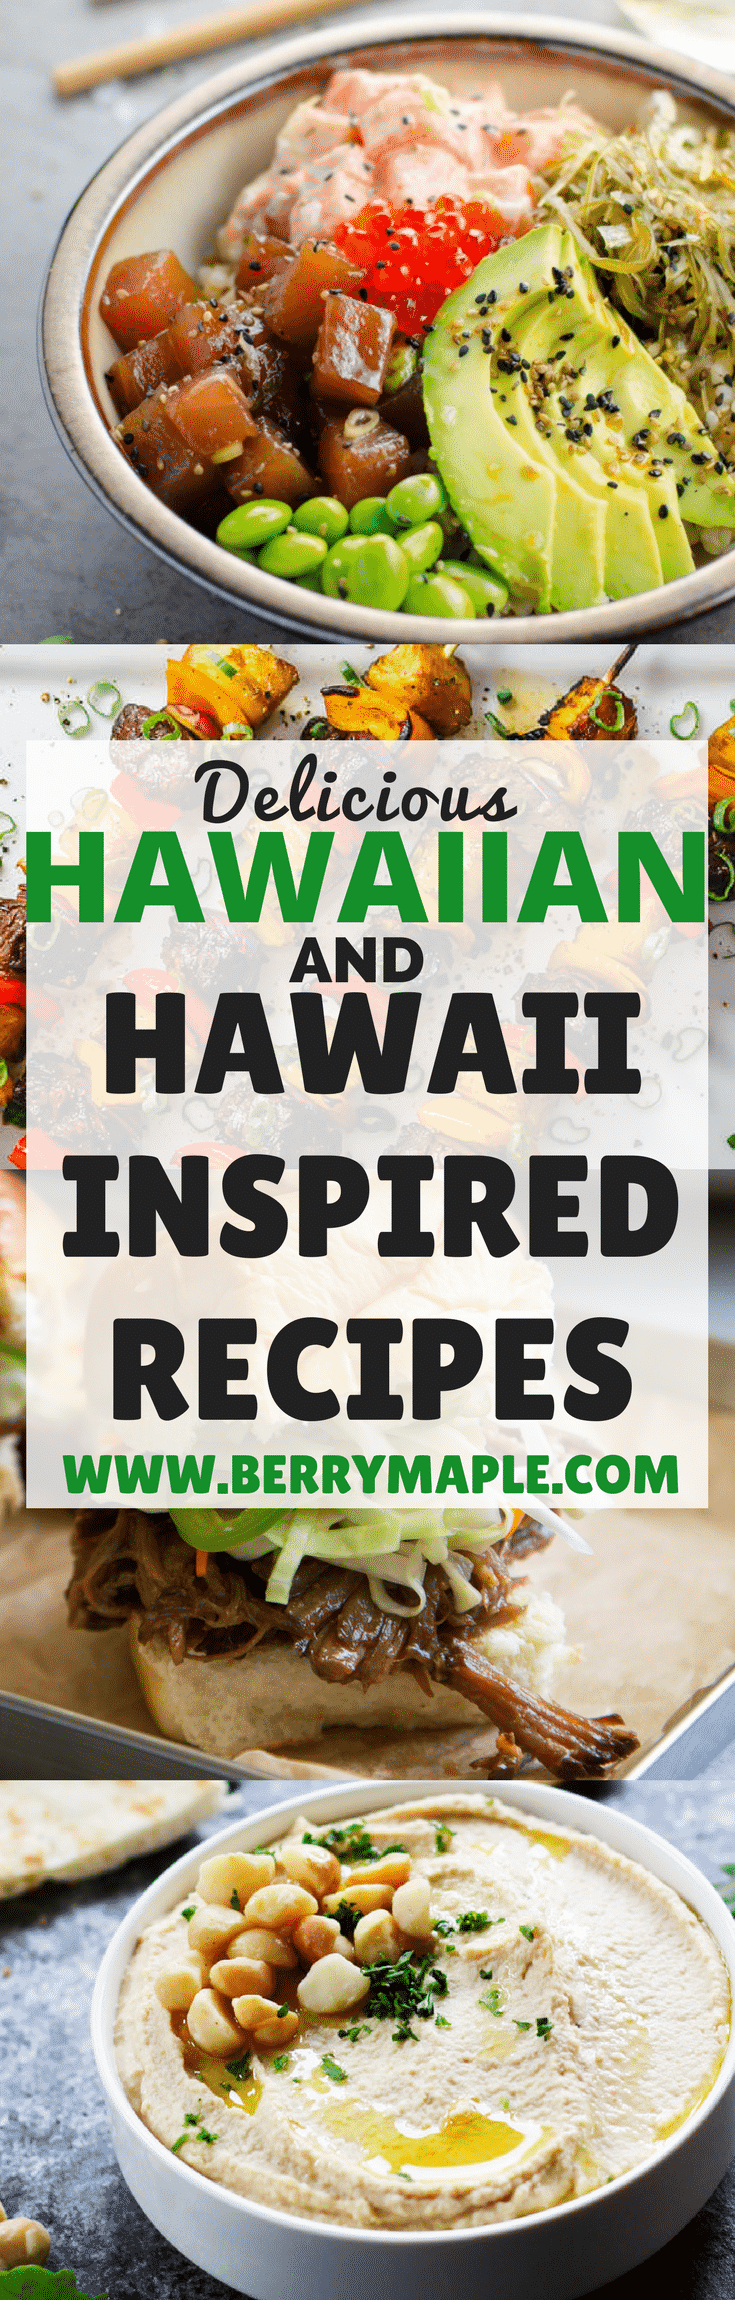 hawaiian recipe roundup, many recipes